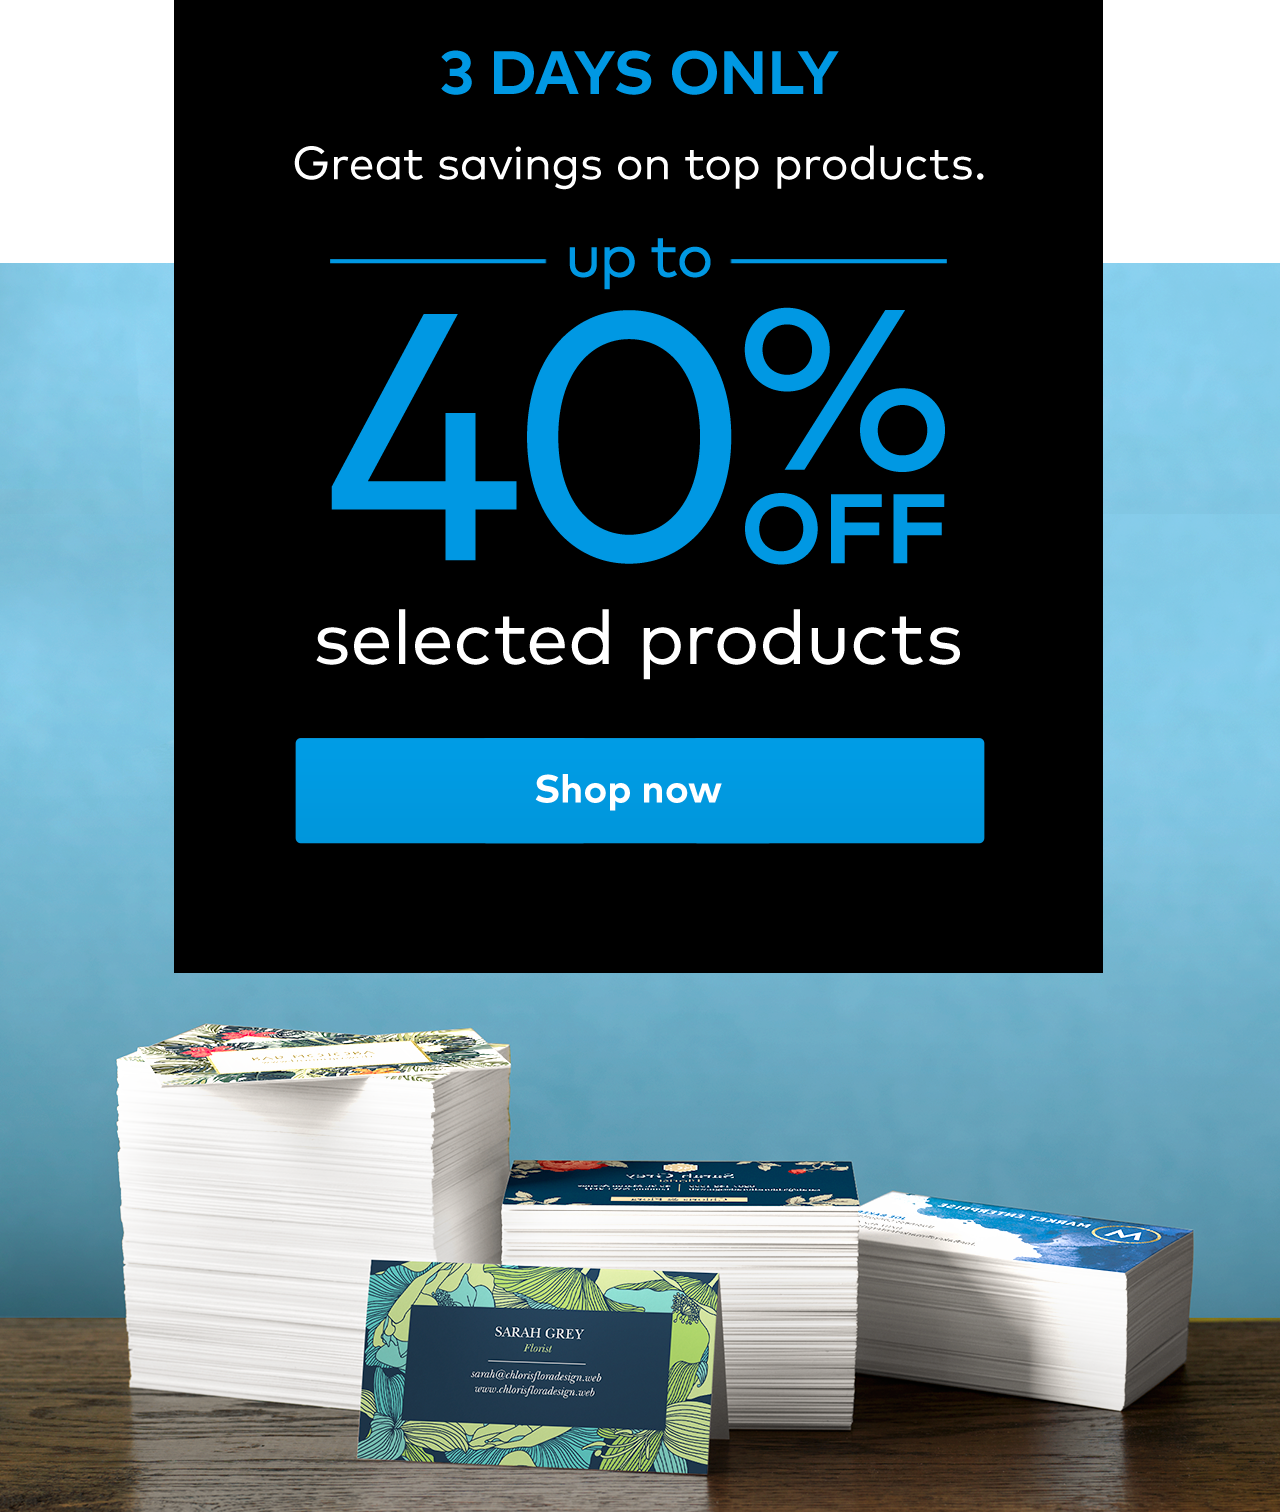 up to 40% off selected products.